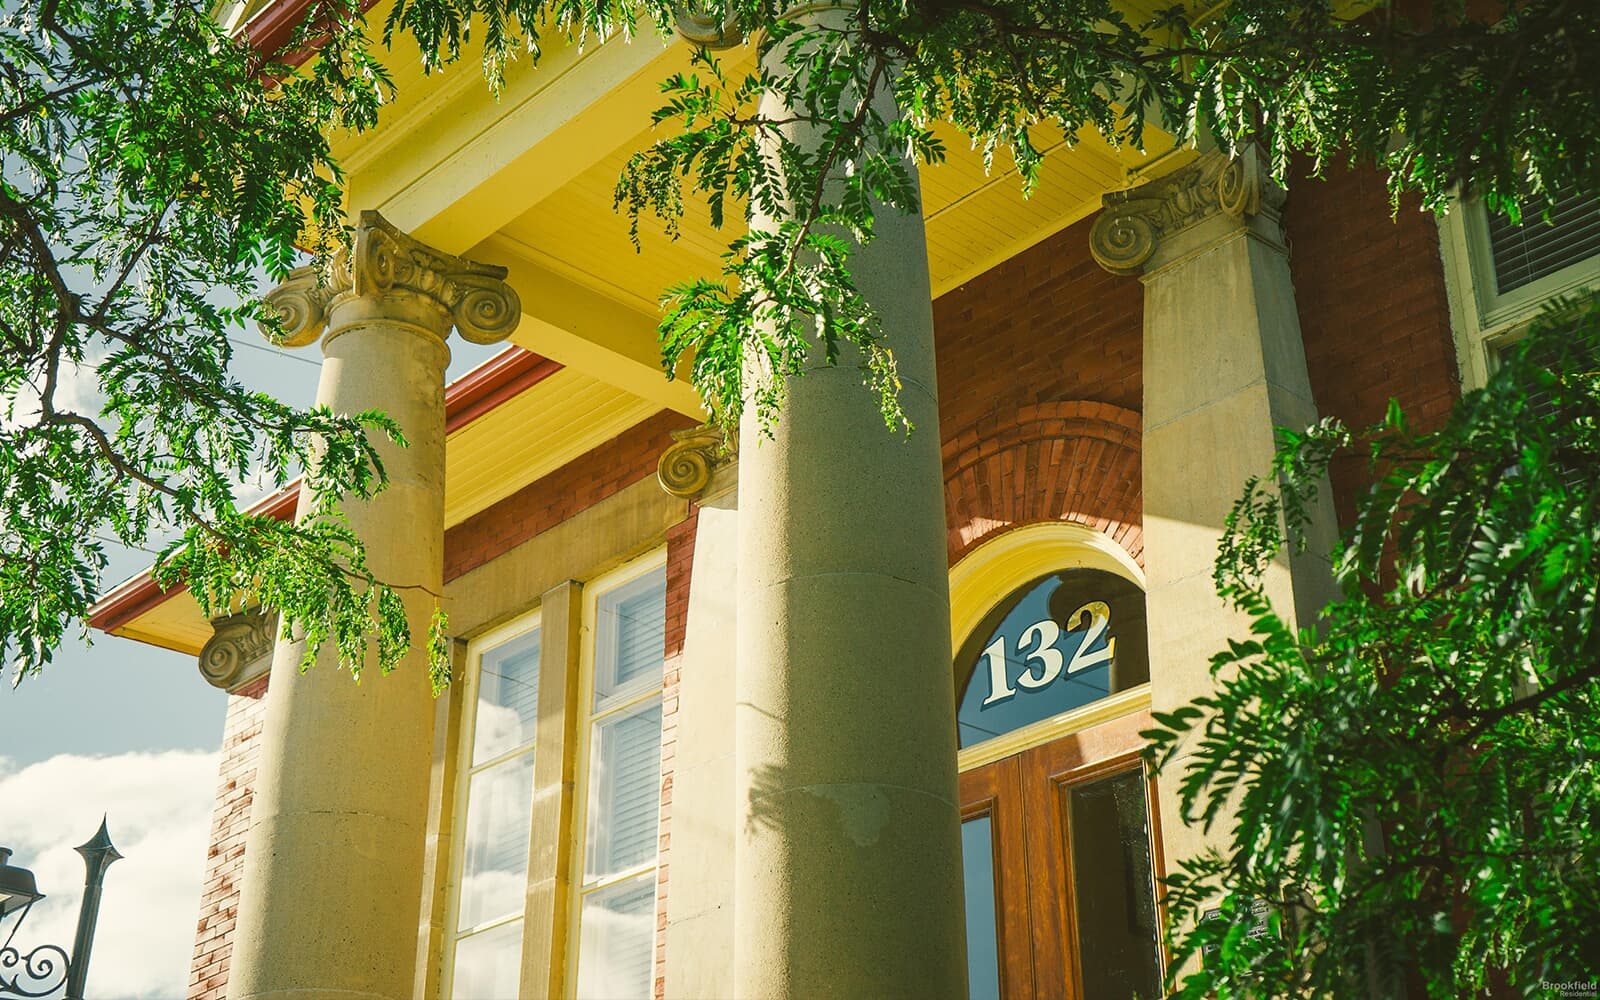 Old Building With Columns Surrounded by Branches in Whitby, ON